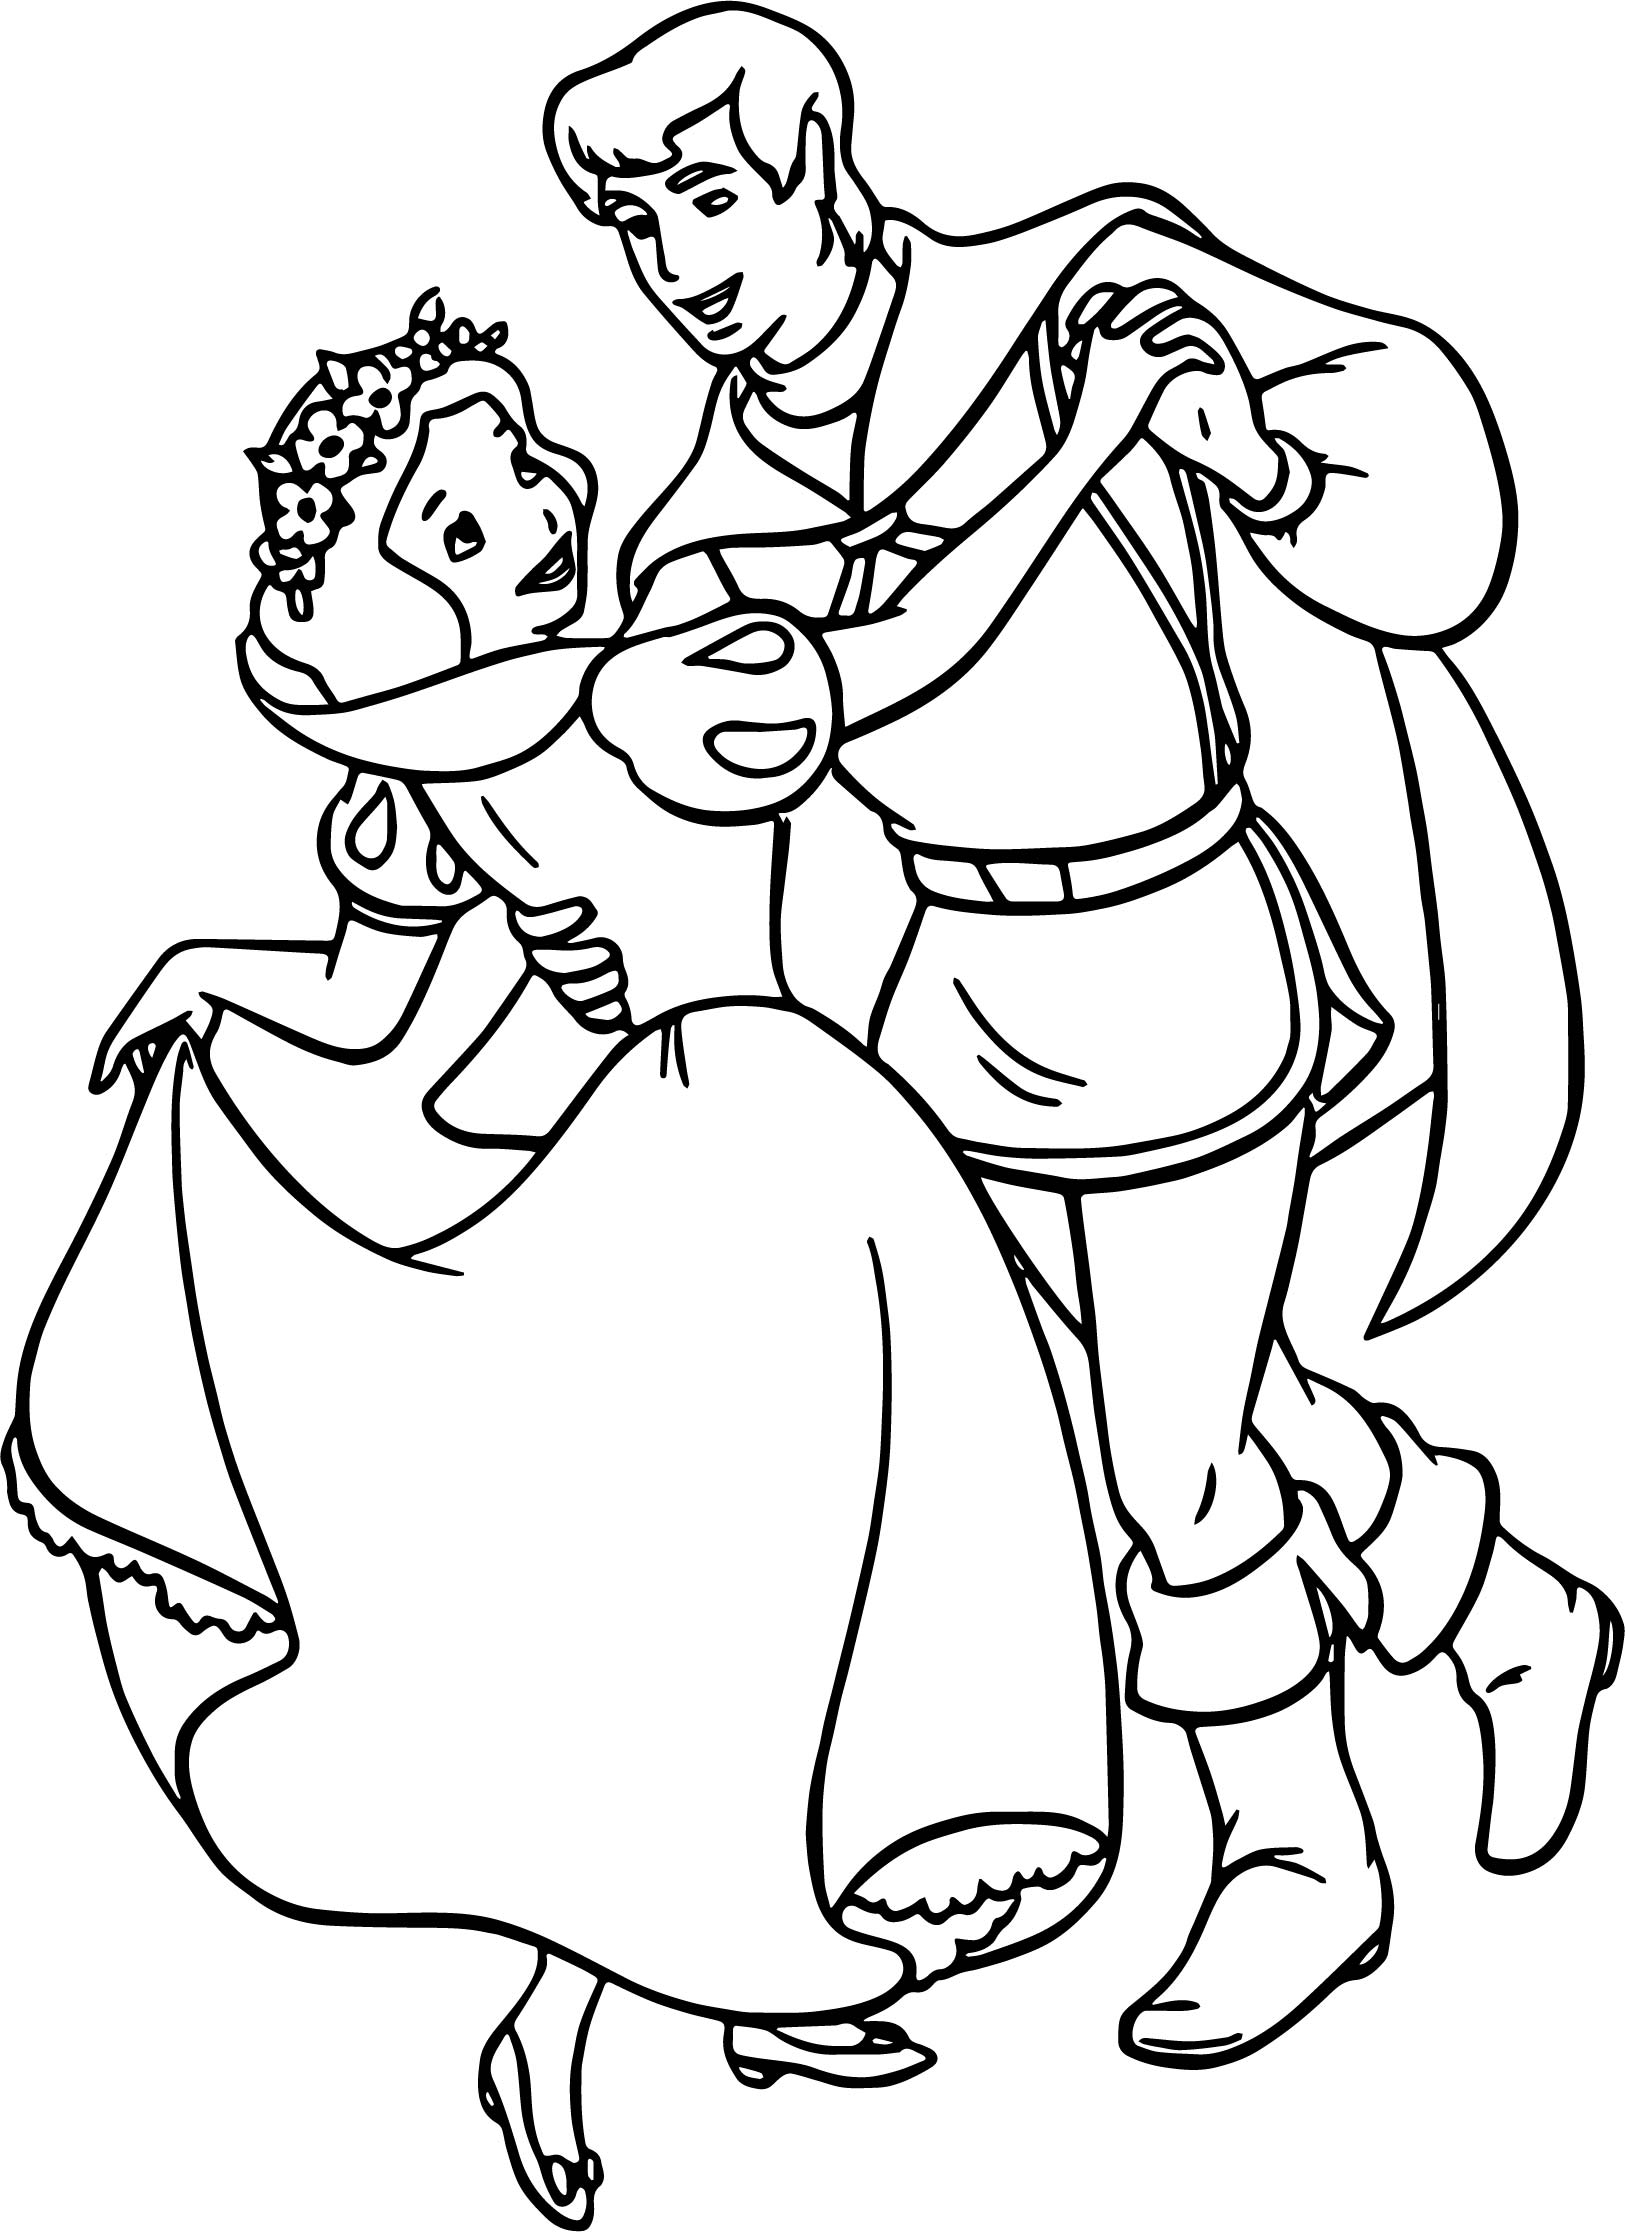 snow white and the prince dance coloring page wecoloringpage